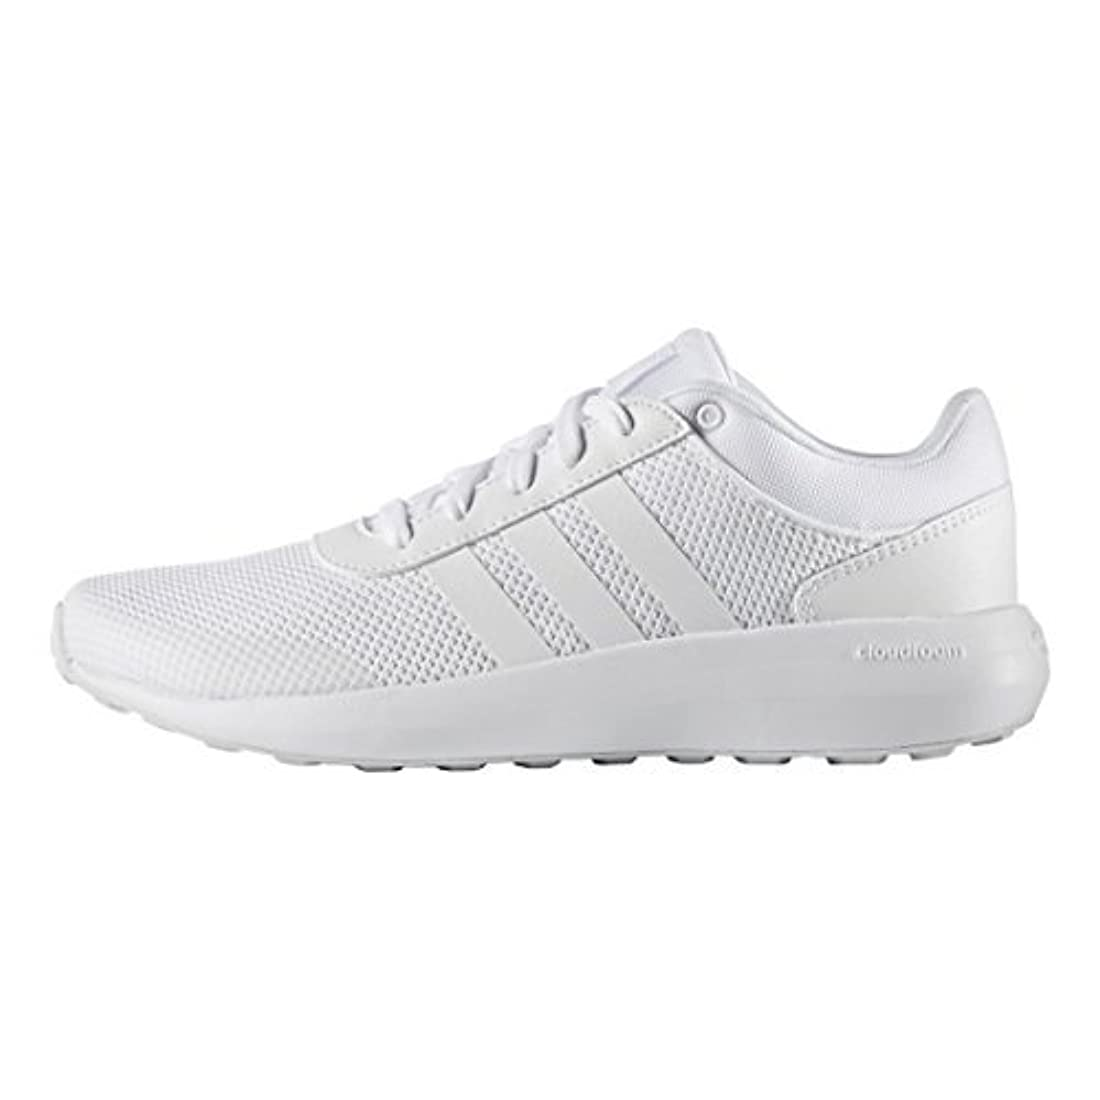 adidas neo men s cloudfoam race running shoe cloudfoam race m